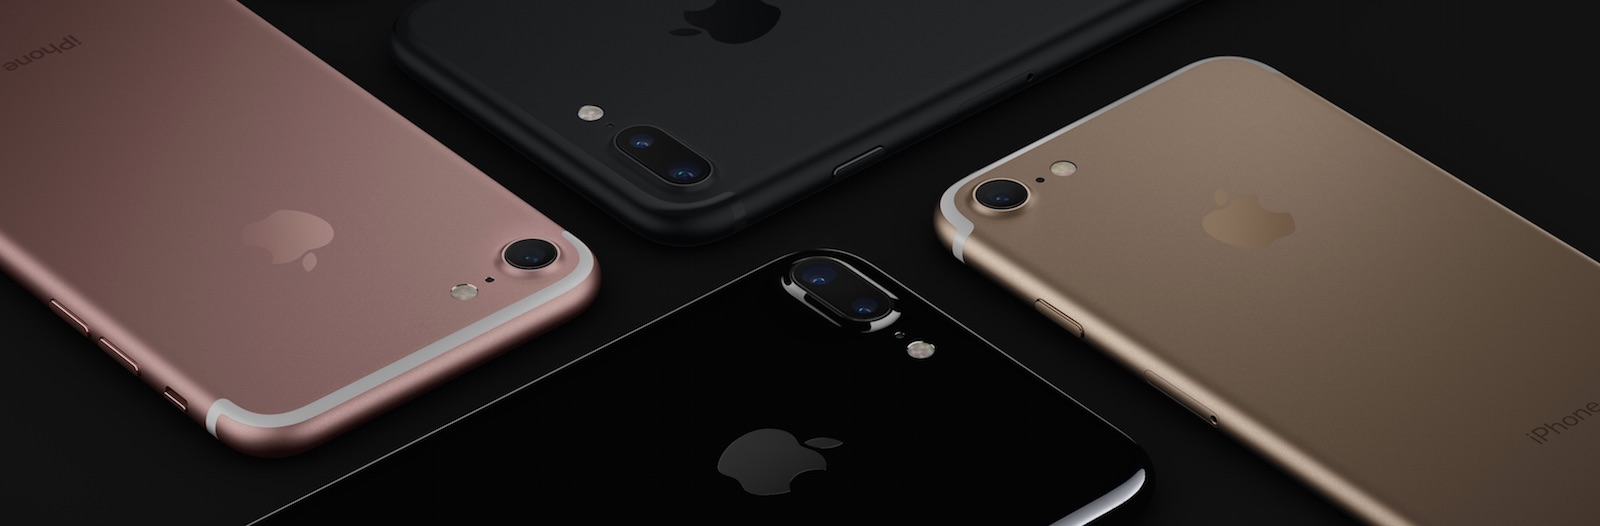 iPhone 7、7 Plus